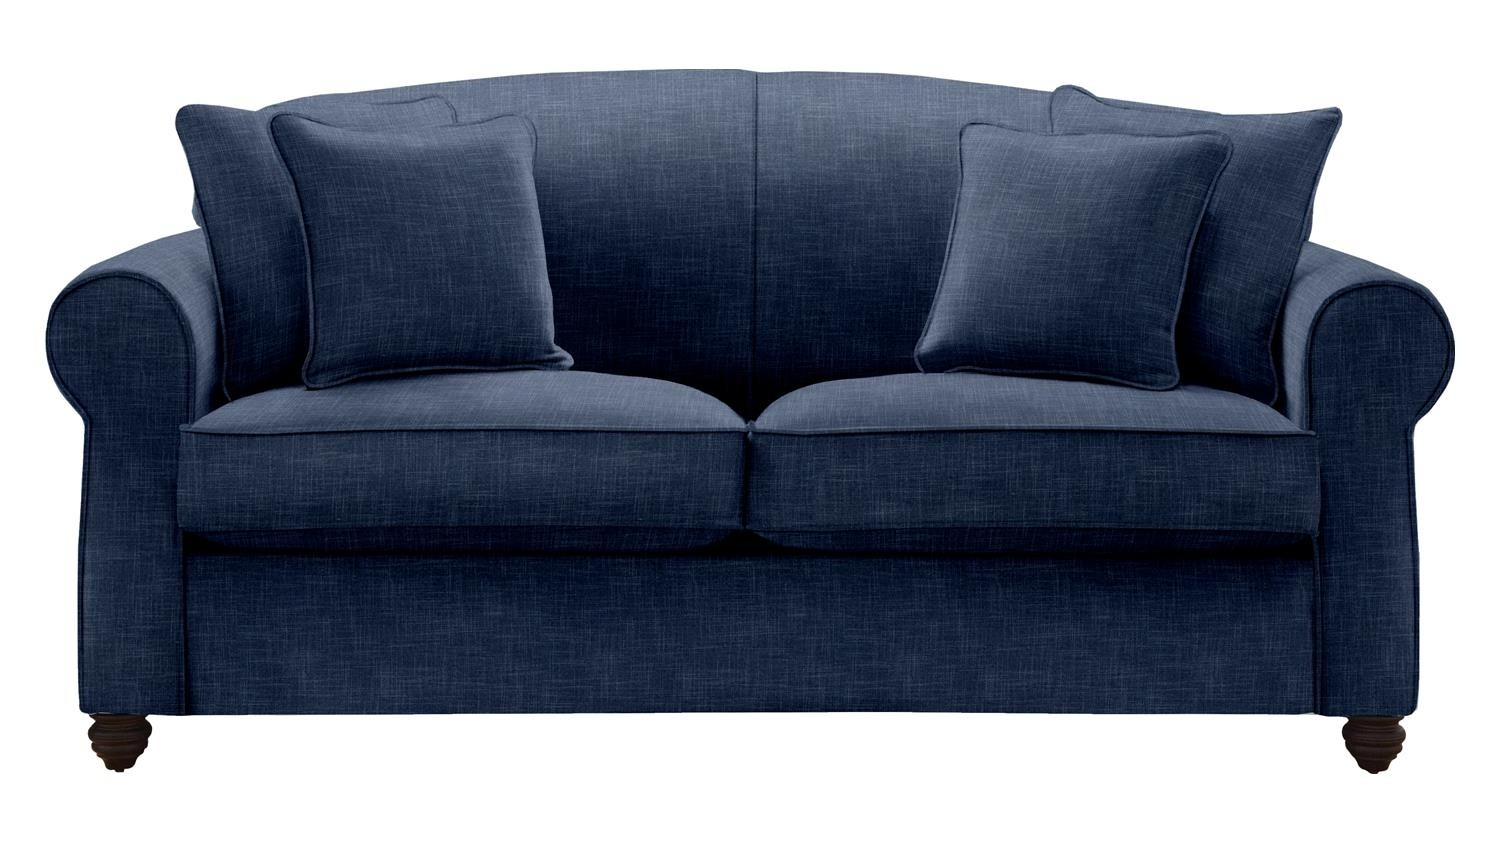 The Chilmark 2 Seater Sofa Bed